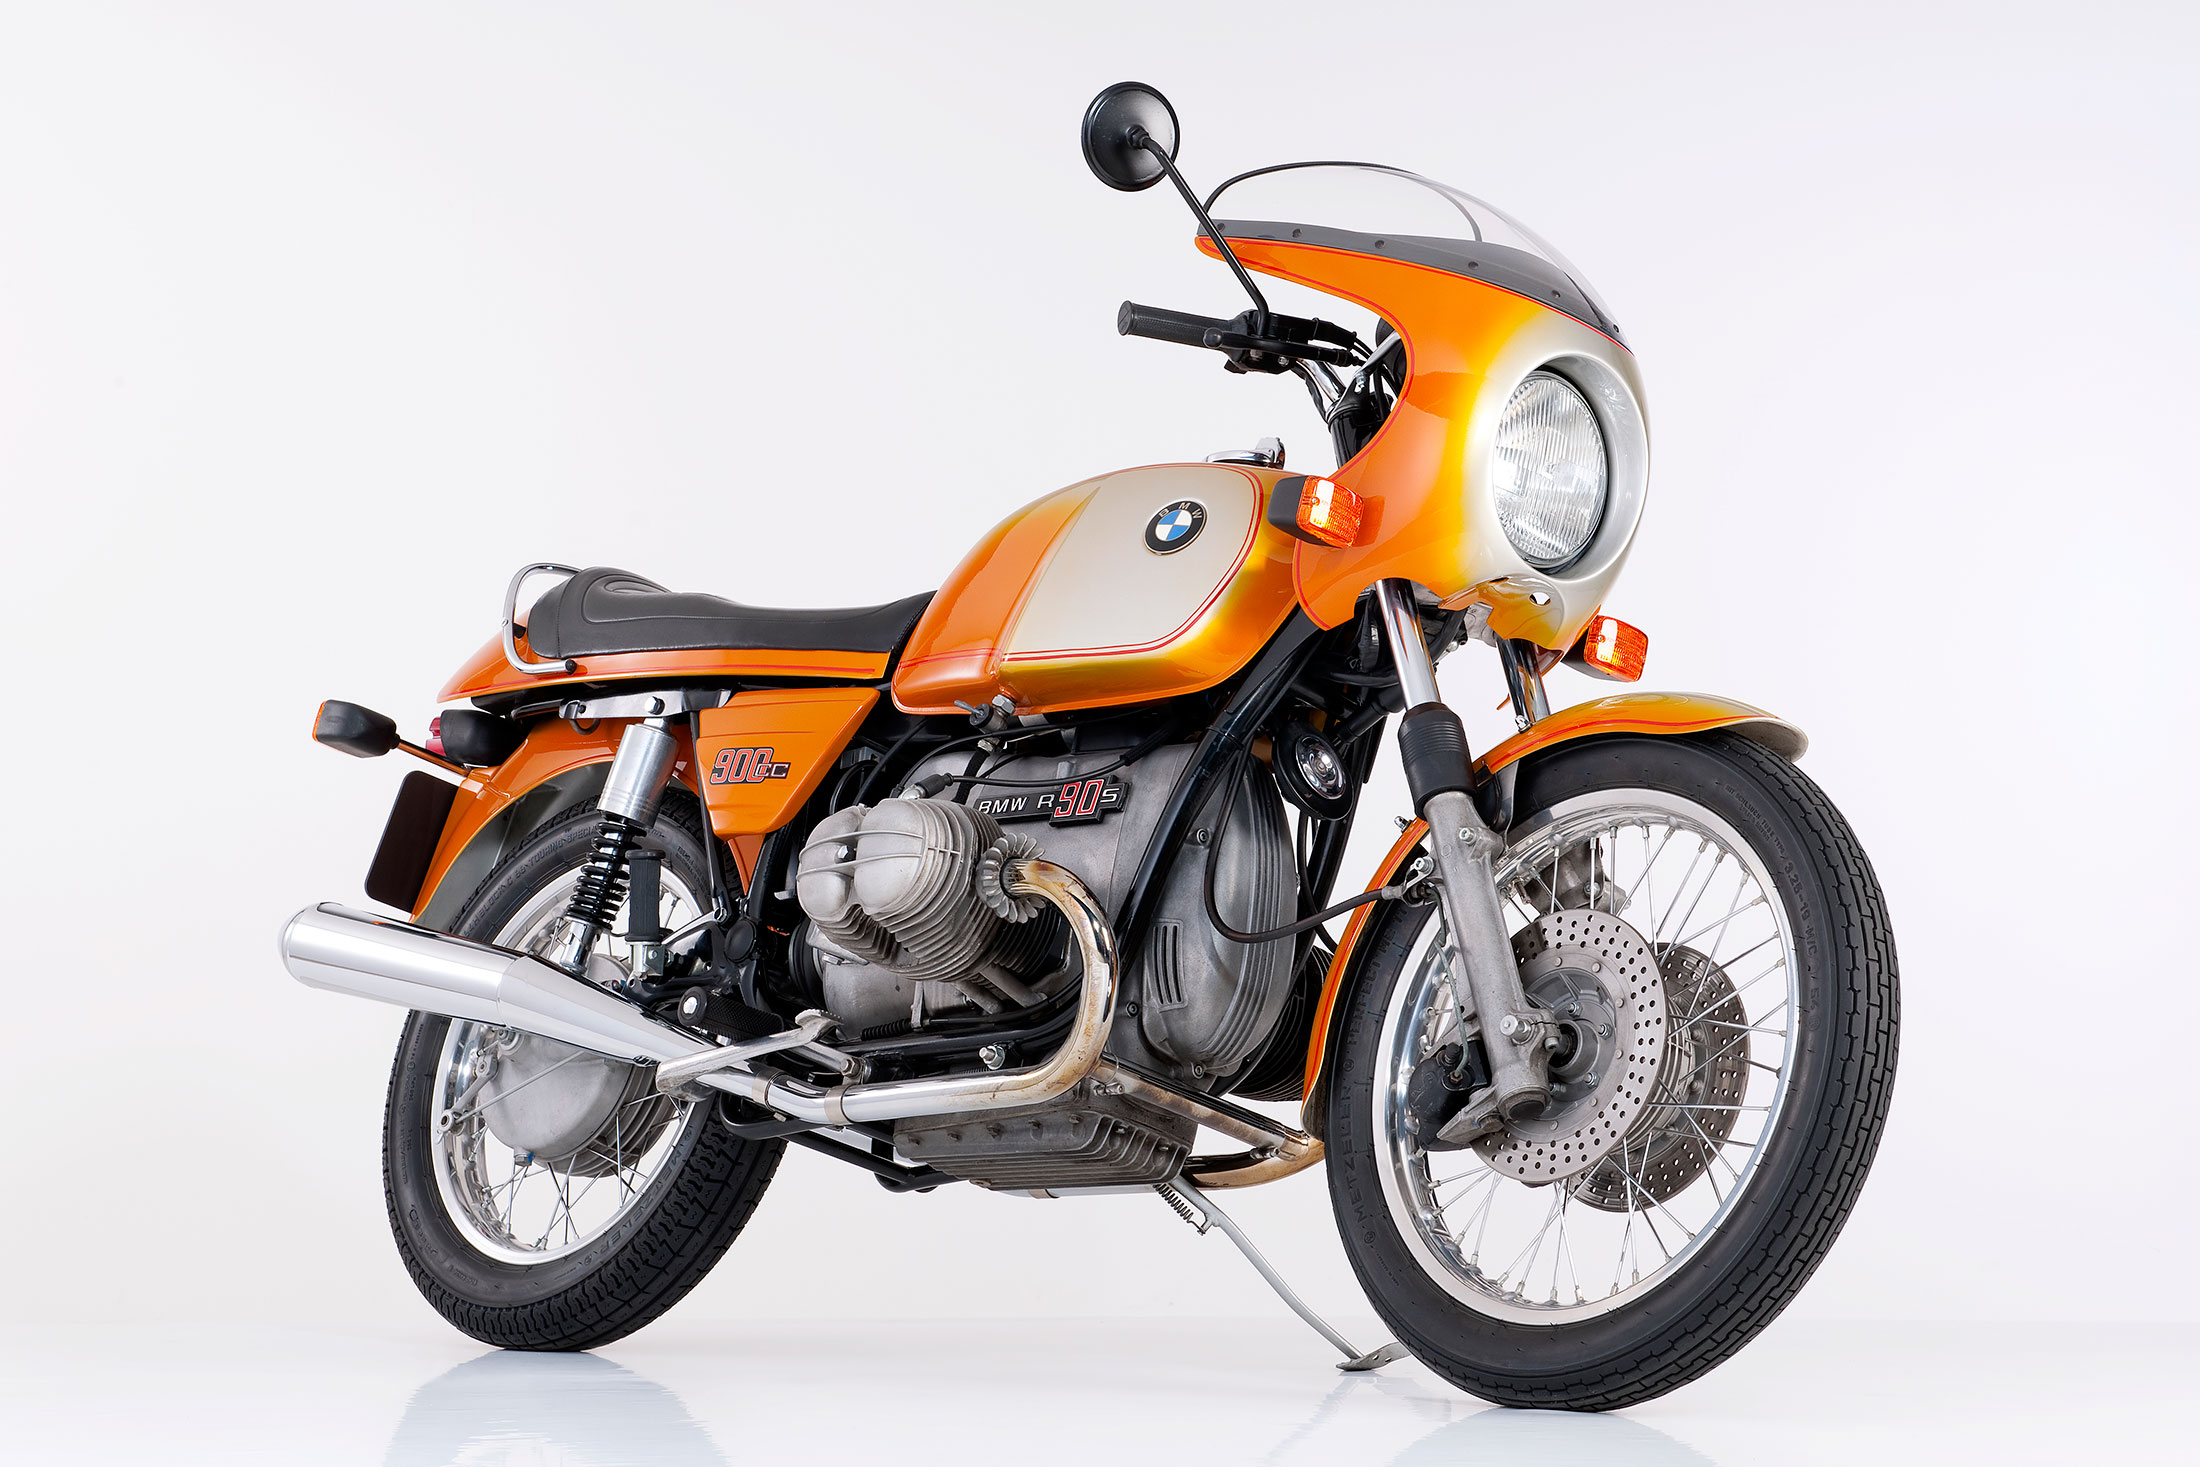 The 1973 BMW R90S